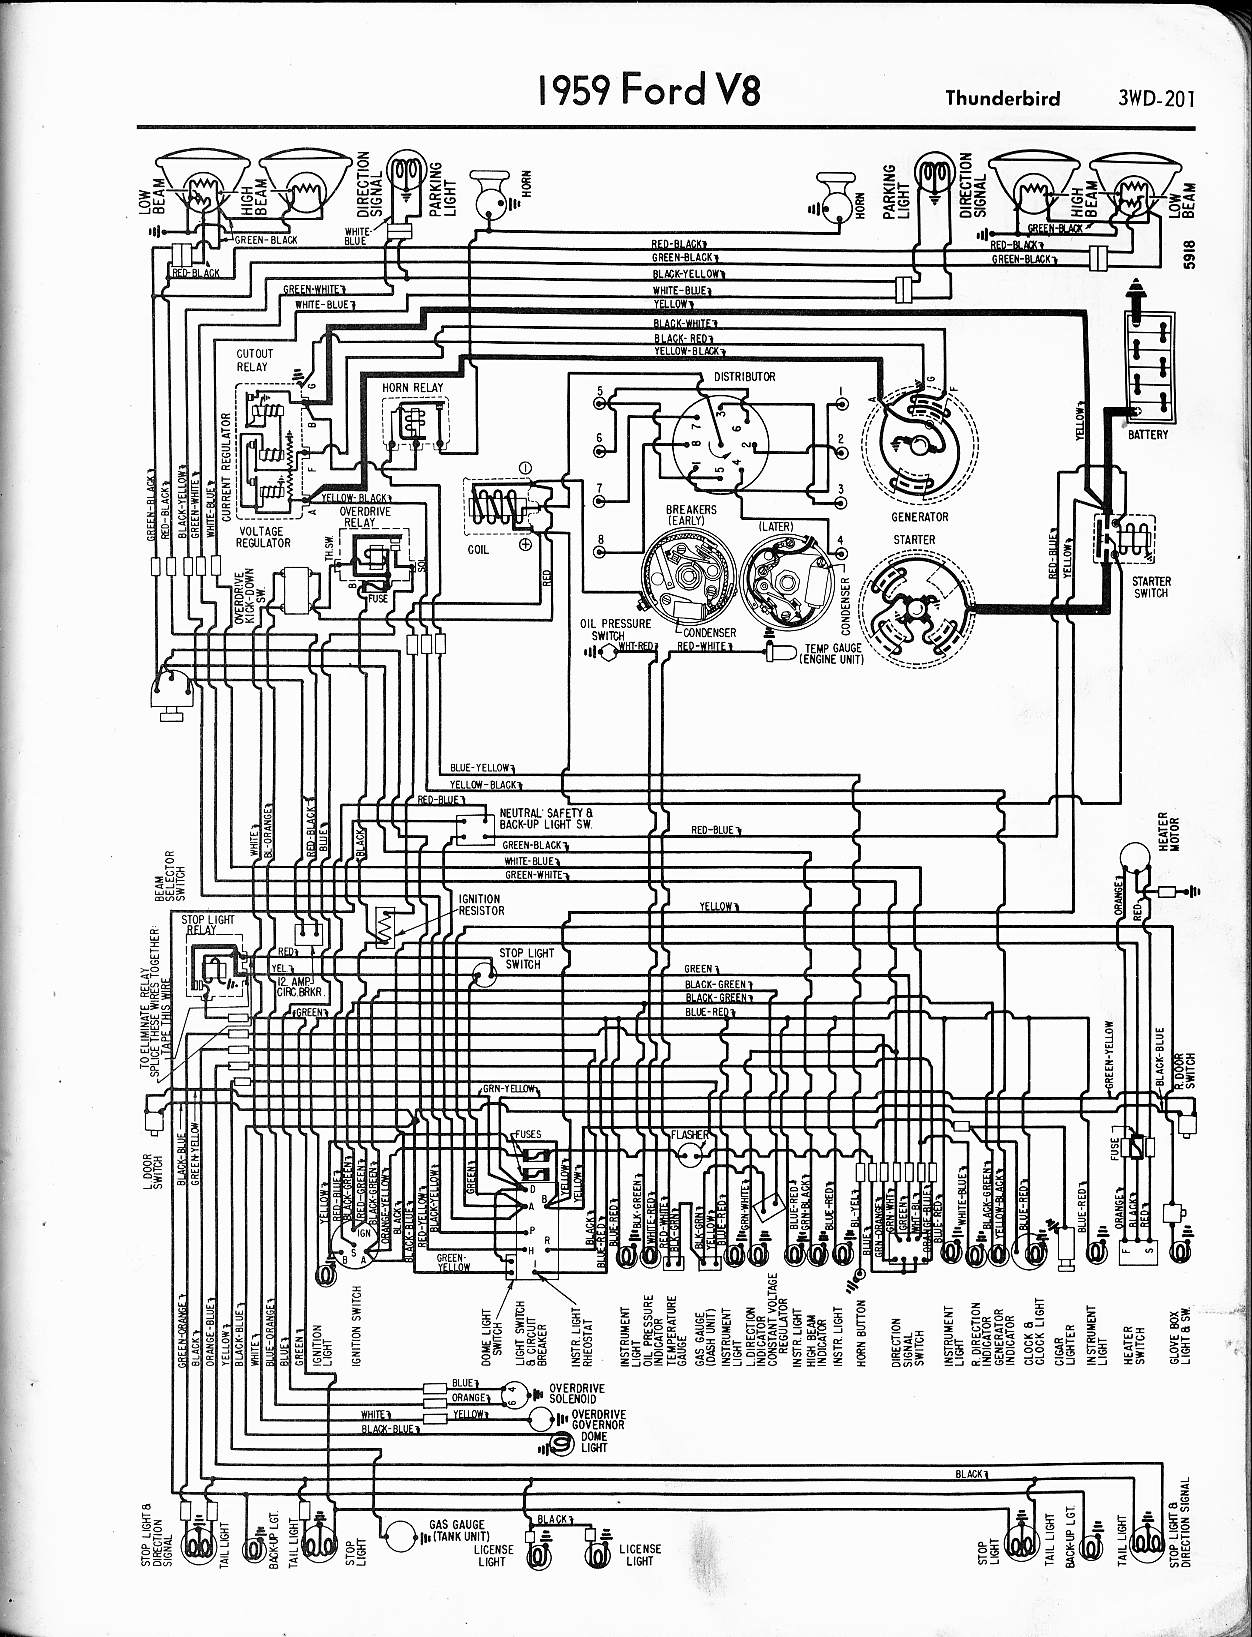 57-65 Ford Wiring Diagrams on f15 wiring harness, f1 wiring harness, f150 wiring harness, ranger wiring harness, f550 wiring harness, f650 wiring harness, f350 wiring harness, gt wiring harness, mustang wiring harness,